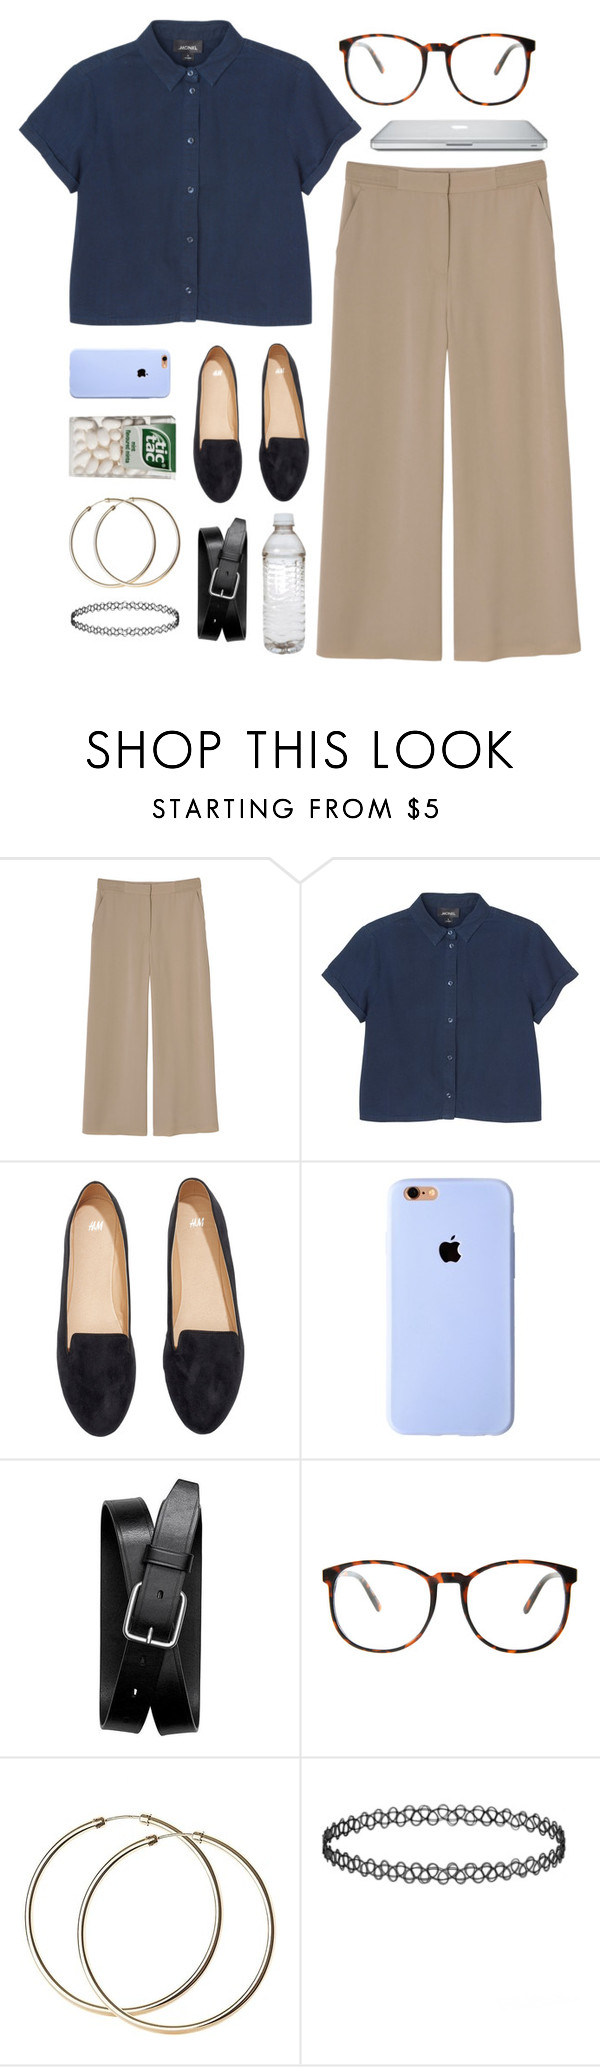 """if we had to have a uniform for school..."" by my-starry-eyed ❤ liked on Polyvore featuring Monki, H&M, Banana Republic, ASOS, women's clothing, women, female, woman, misses and juniors"